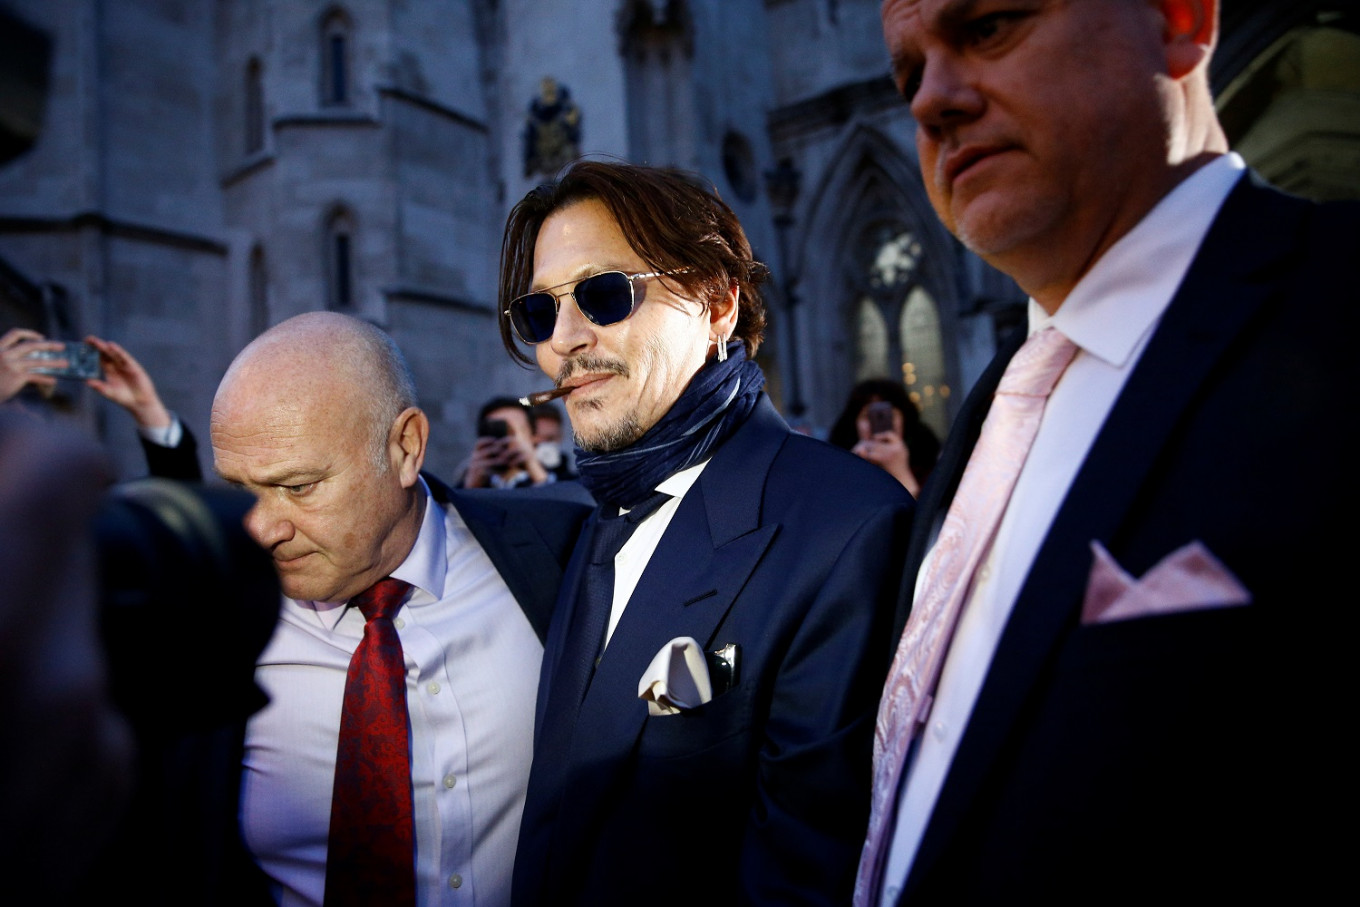 Johnny Depp takes on UK tabloid in court battle over 'wife beater' claims